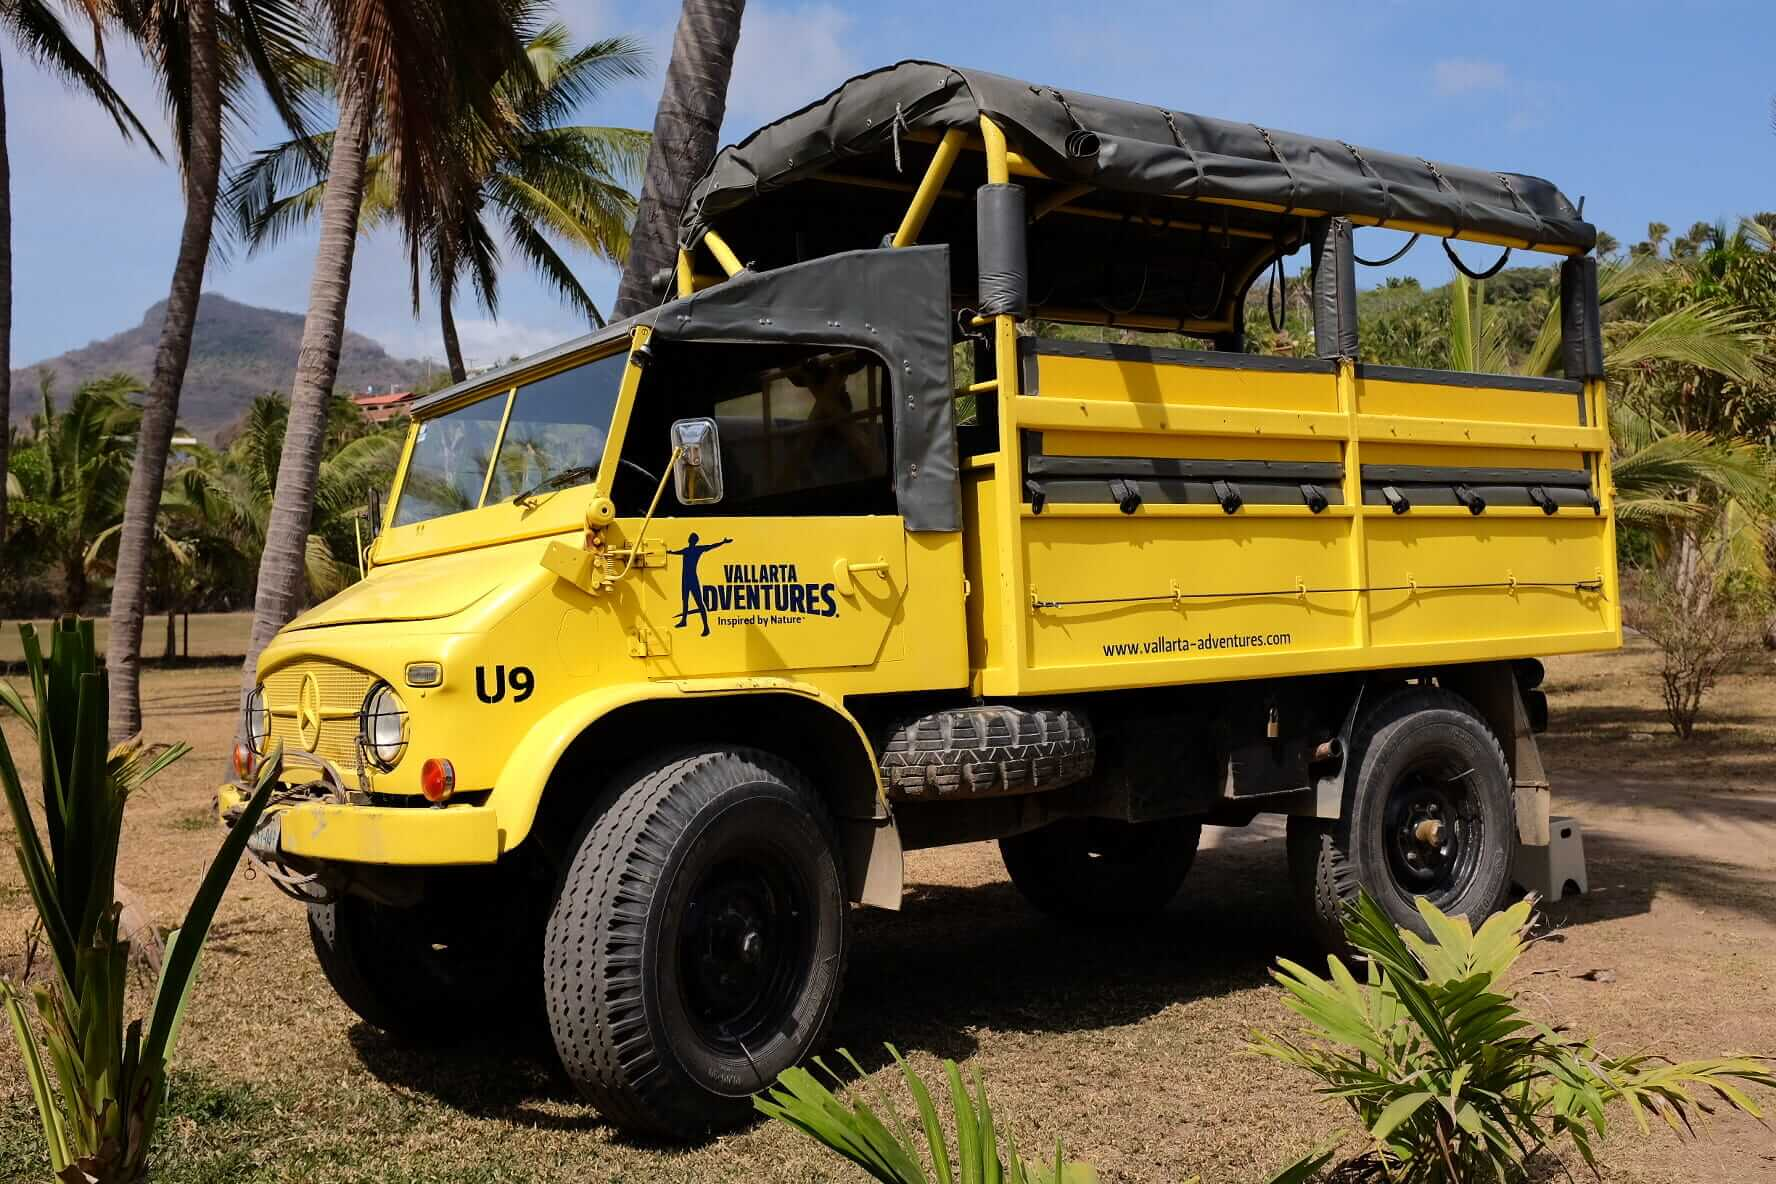 The yellow transport for the day